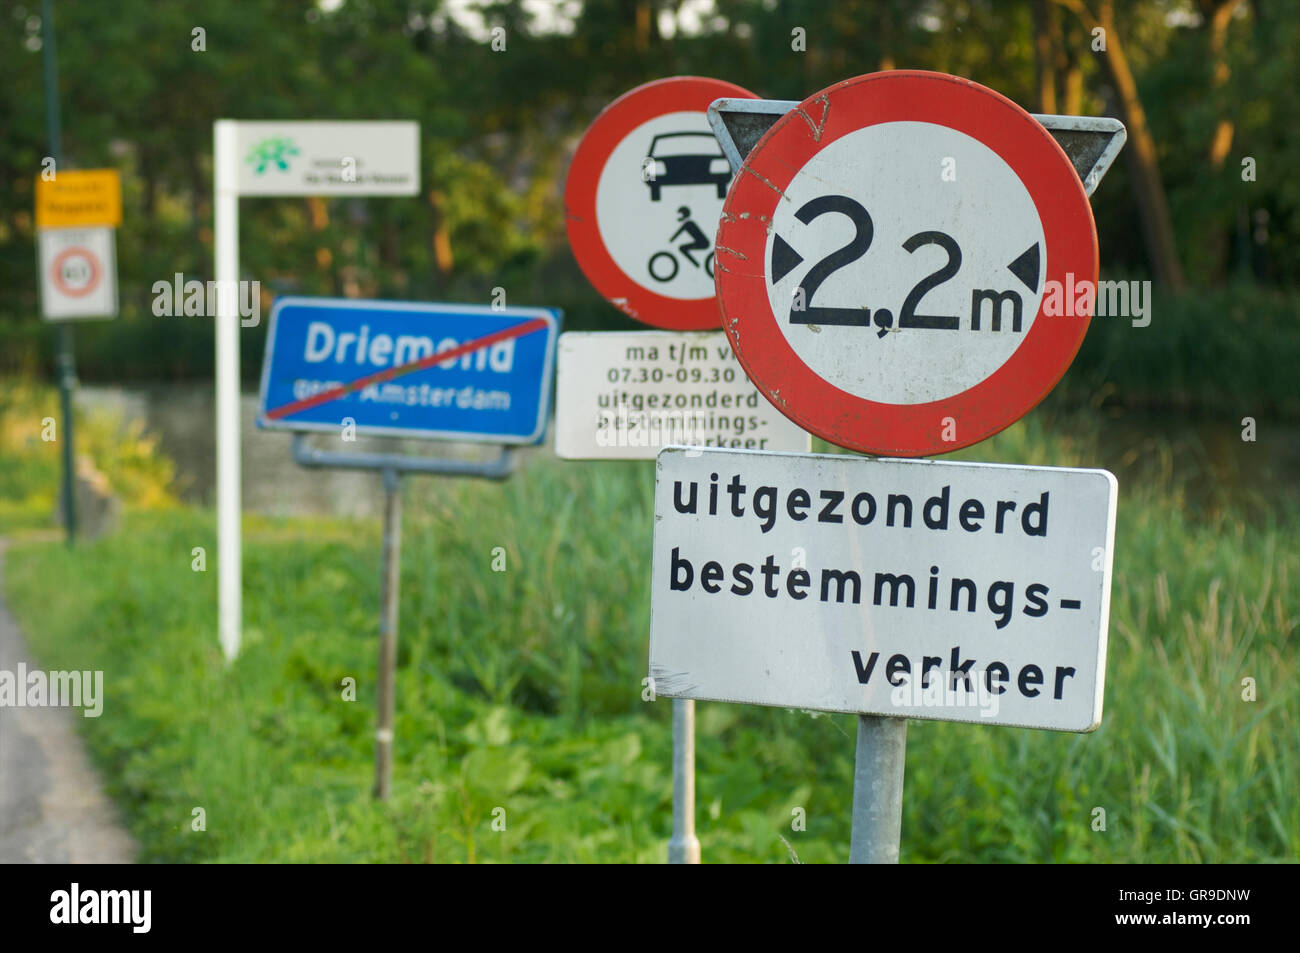 Many road signs along a small road - Stock Image